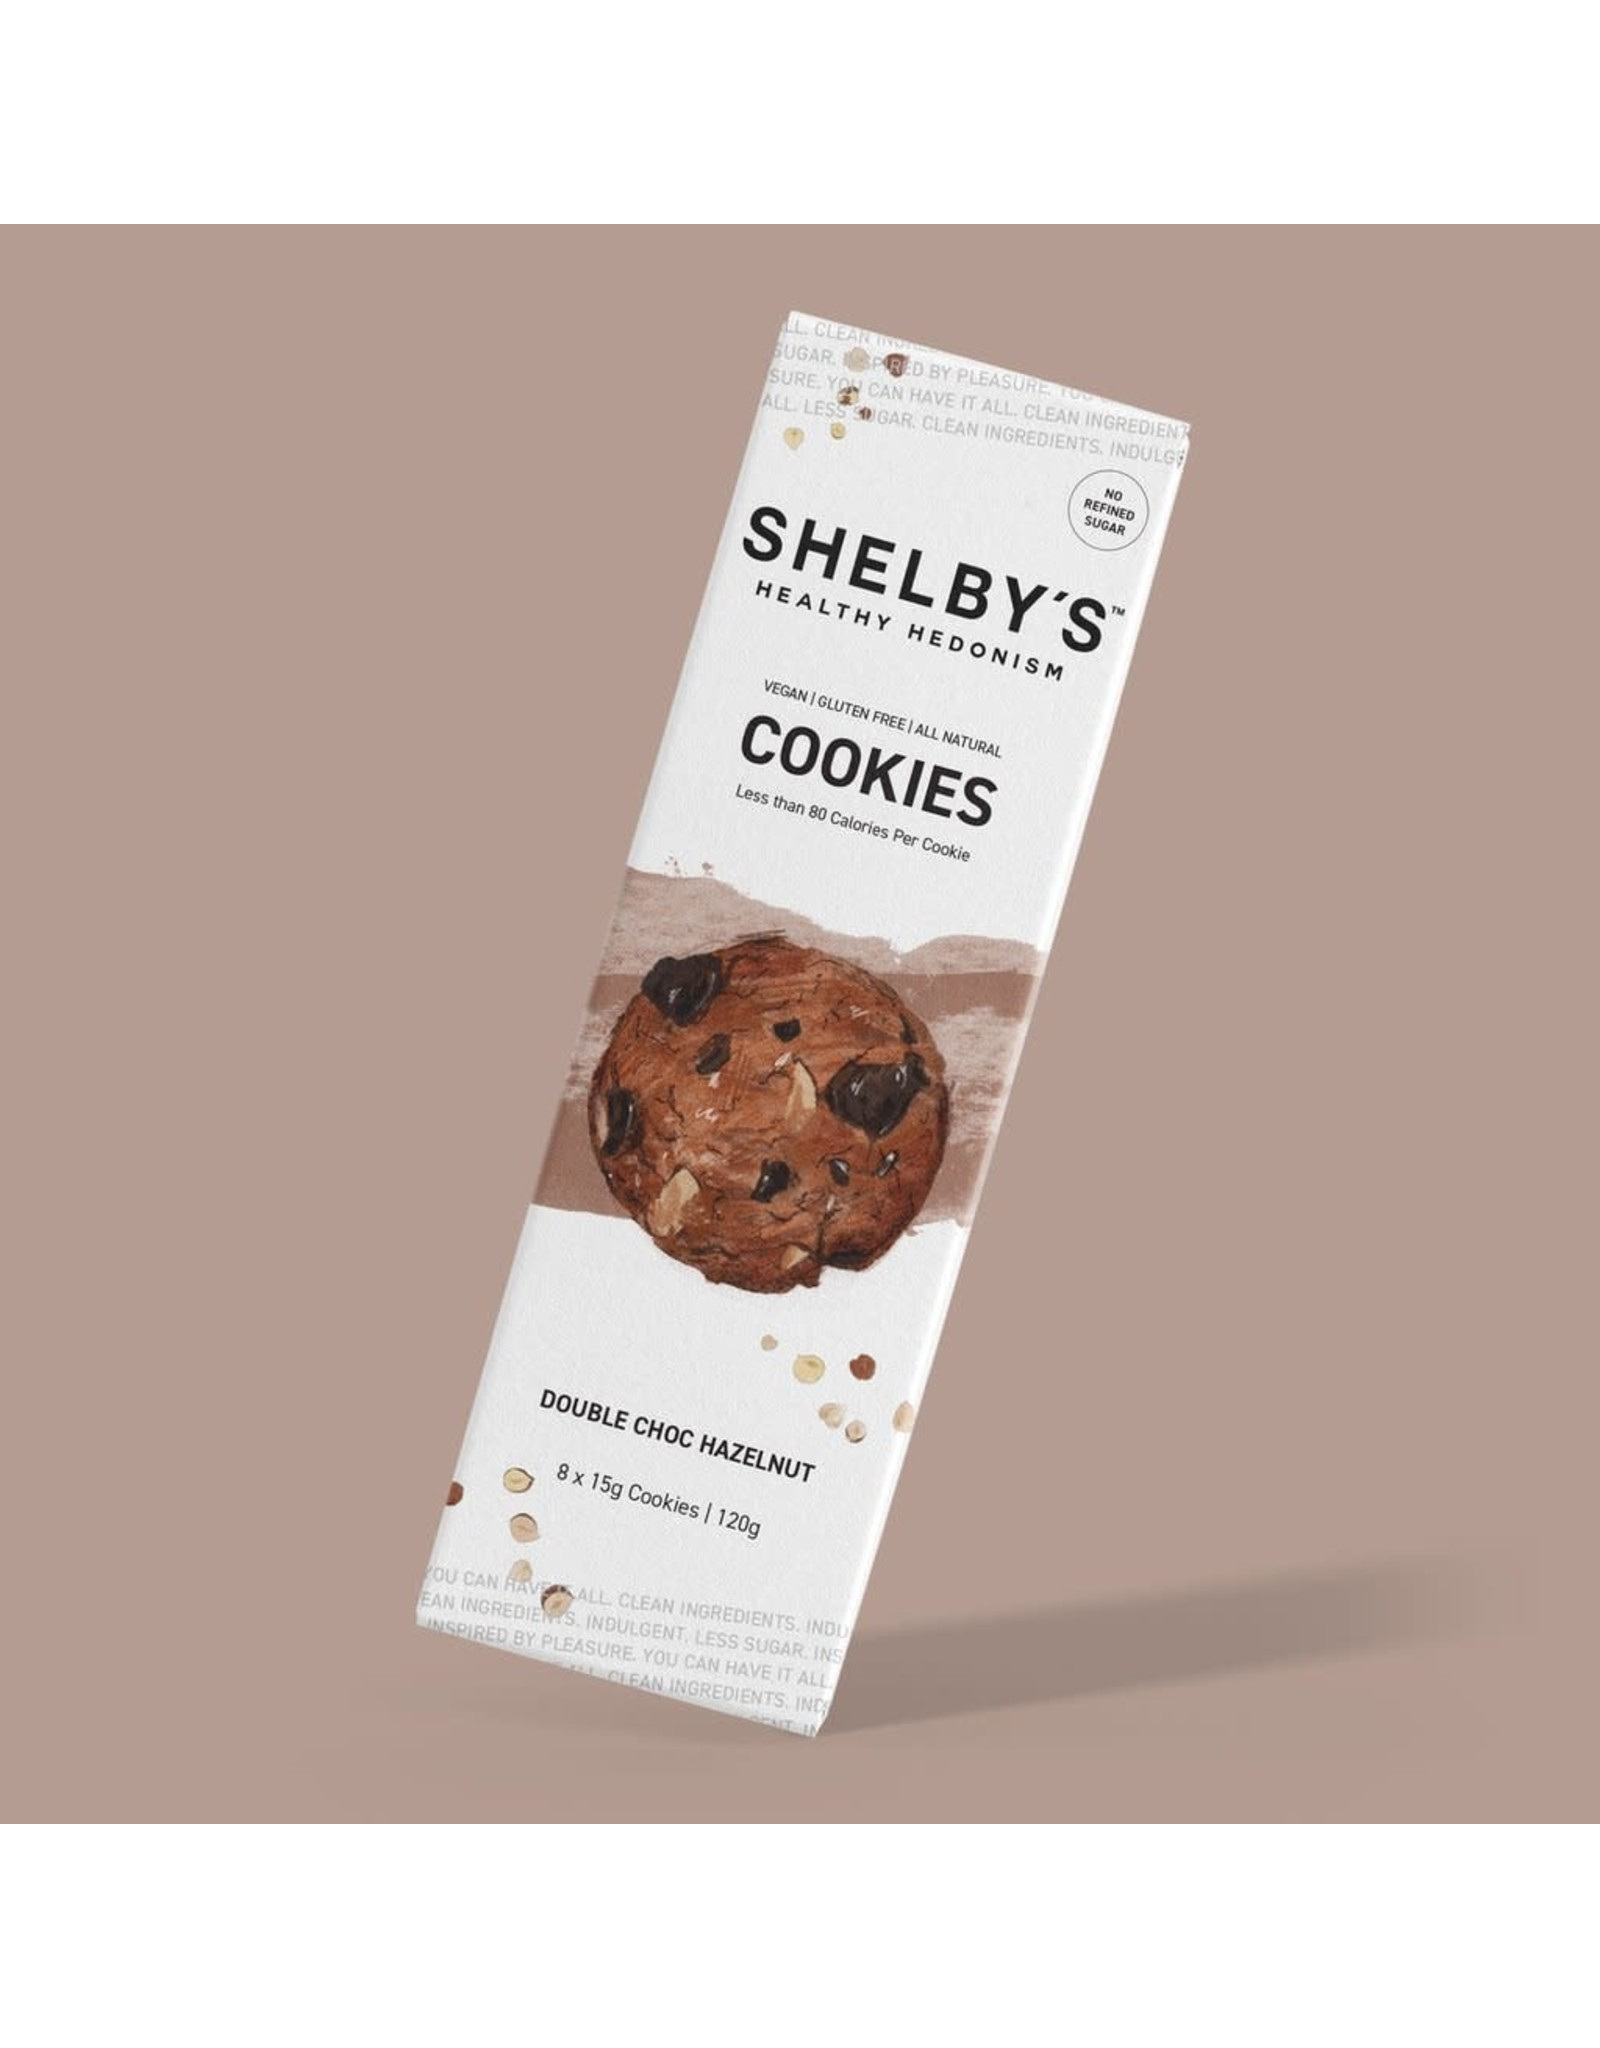 Shelby's Healthy Hedonism Double Choc Hazelnut Cookies 120g